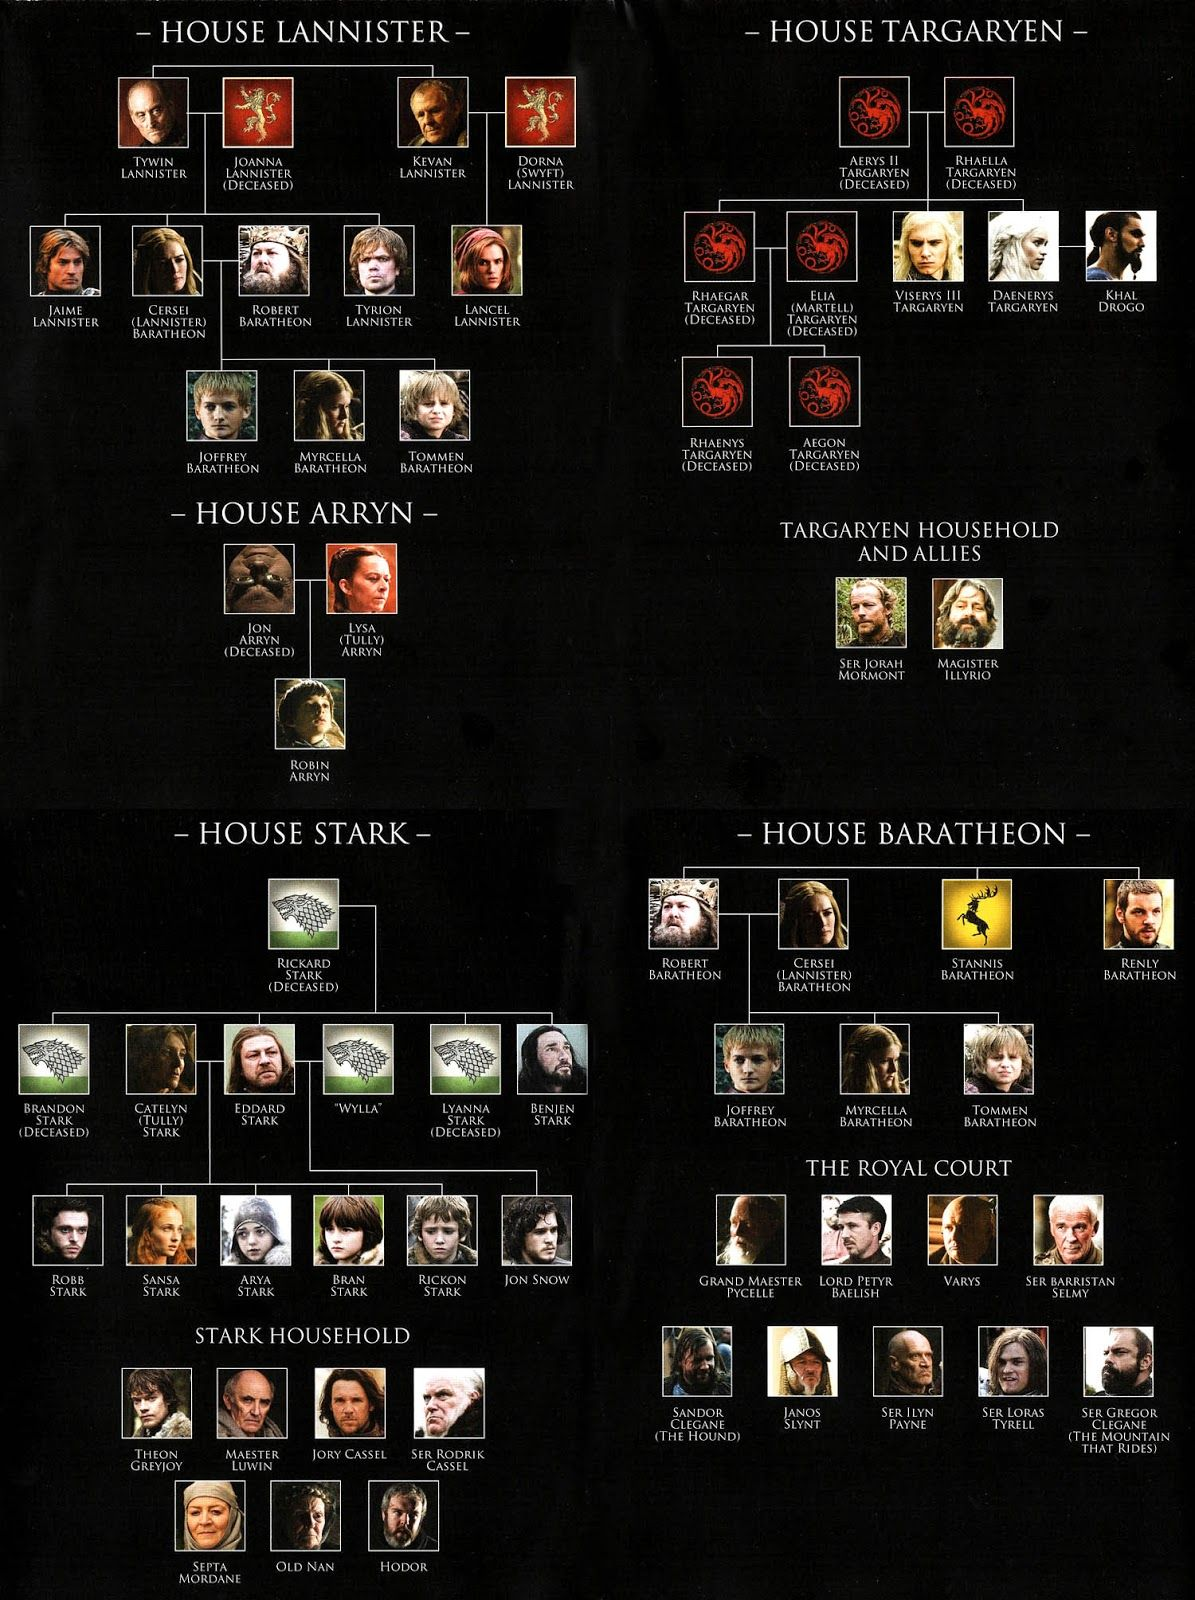 Game Of Thrones Lineage Chart : thrones, lineage, chart, Thrones, Series,, Family, Tree,